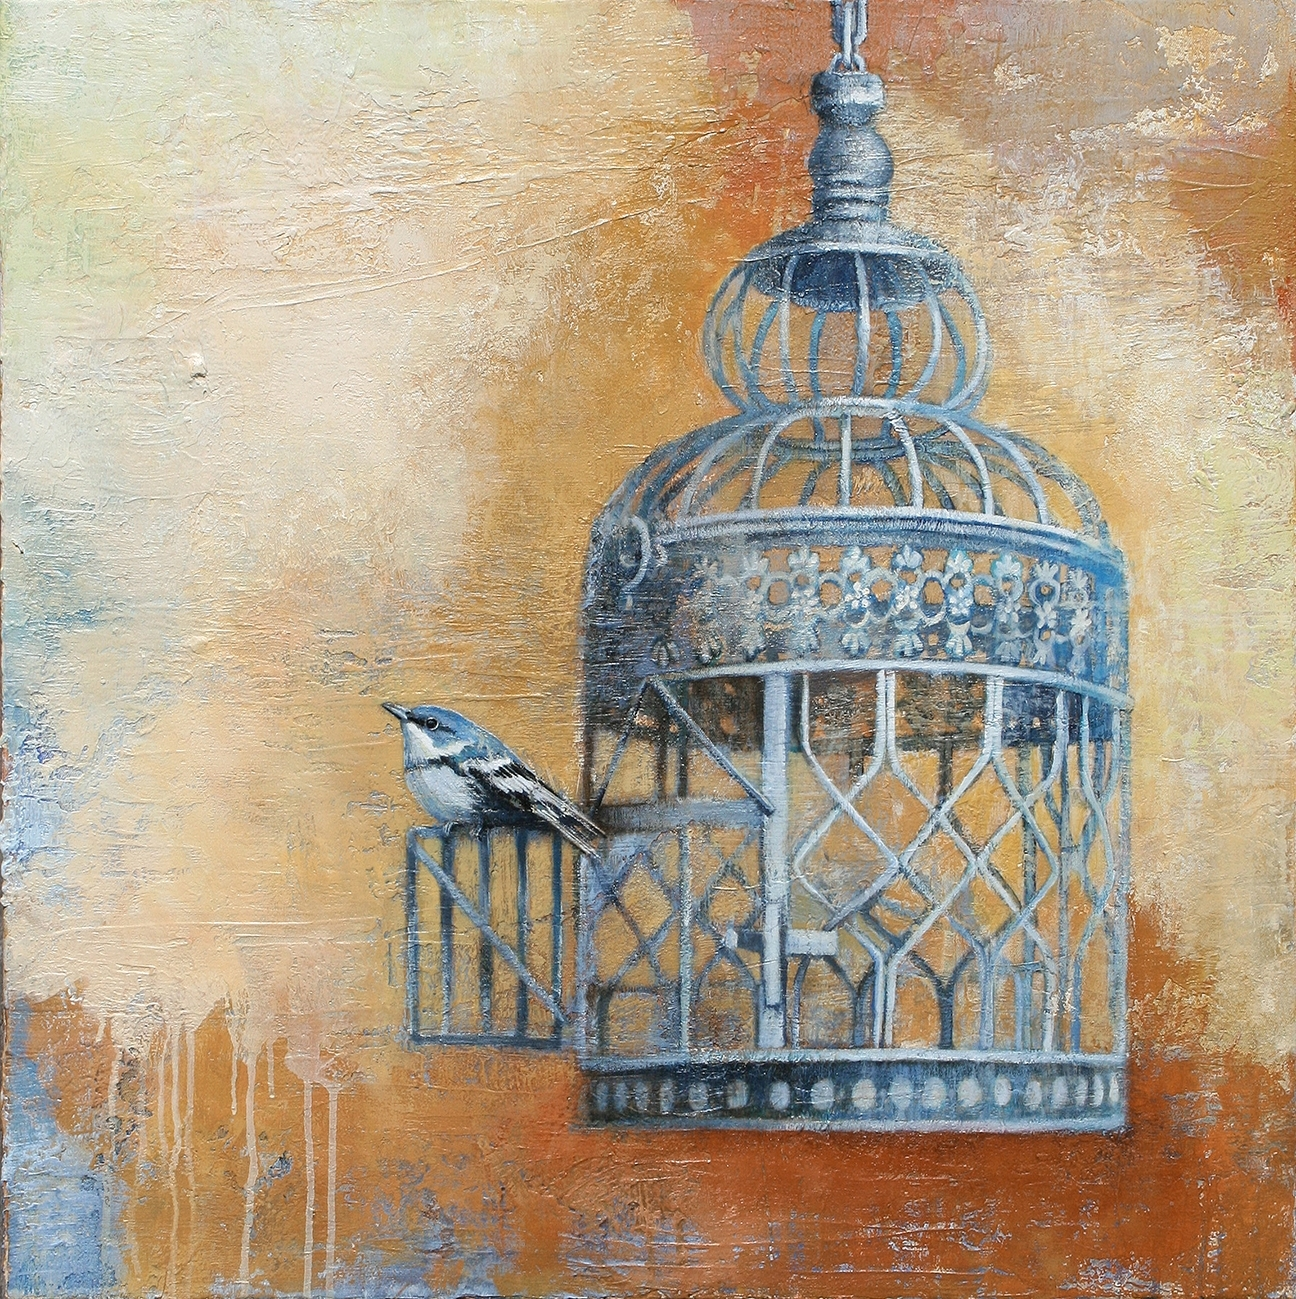 Vintage Bird Cages Interest Me Along With The Theme Of Freedom Regarding Most Current Old Italian Wall Art (View 14 of 15)